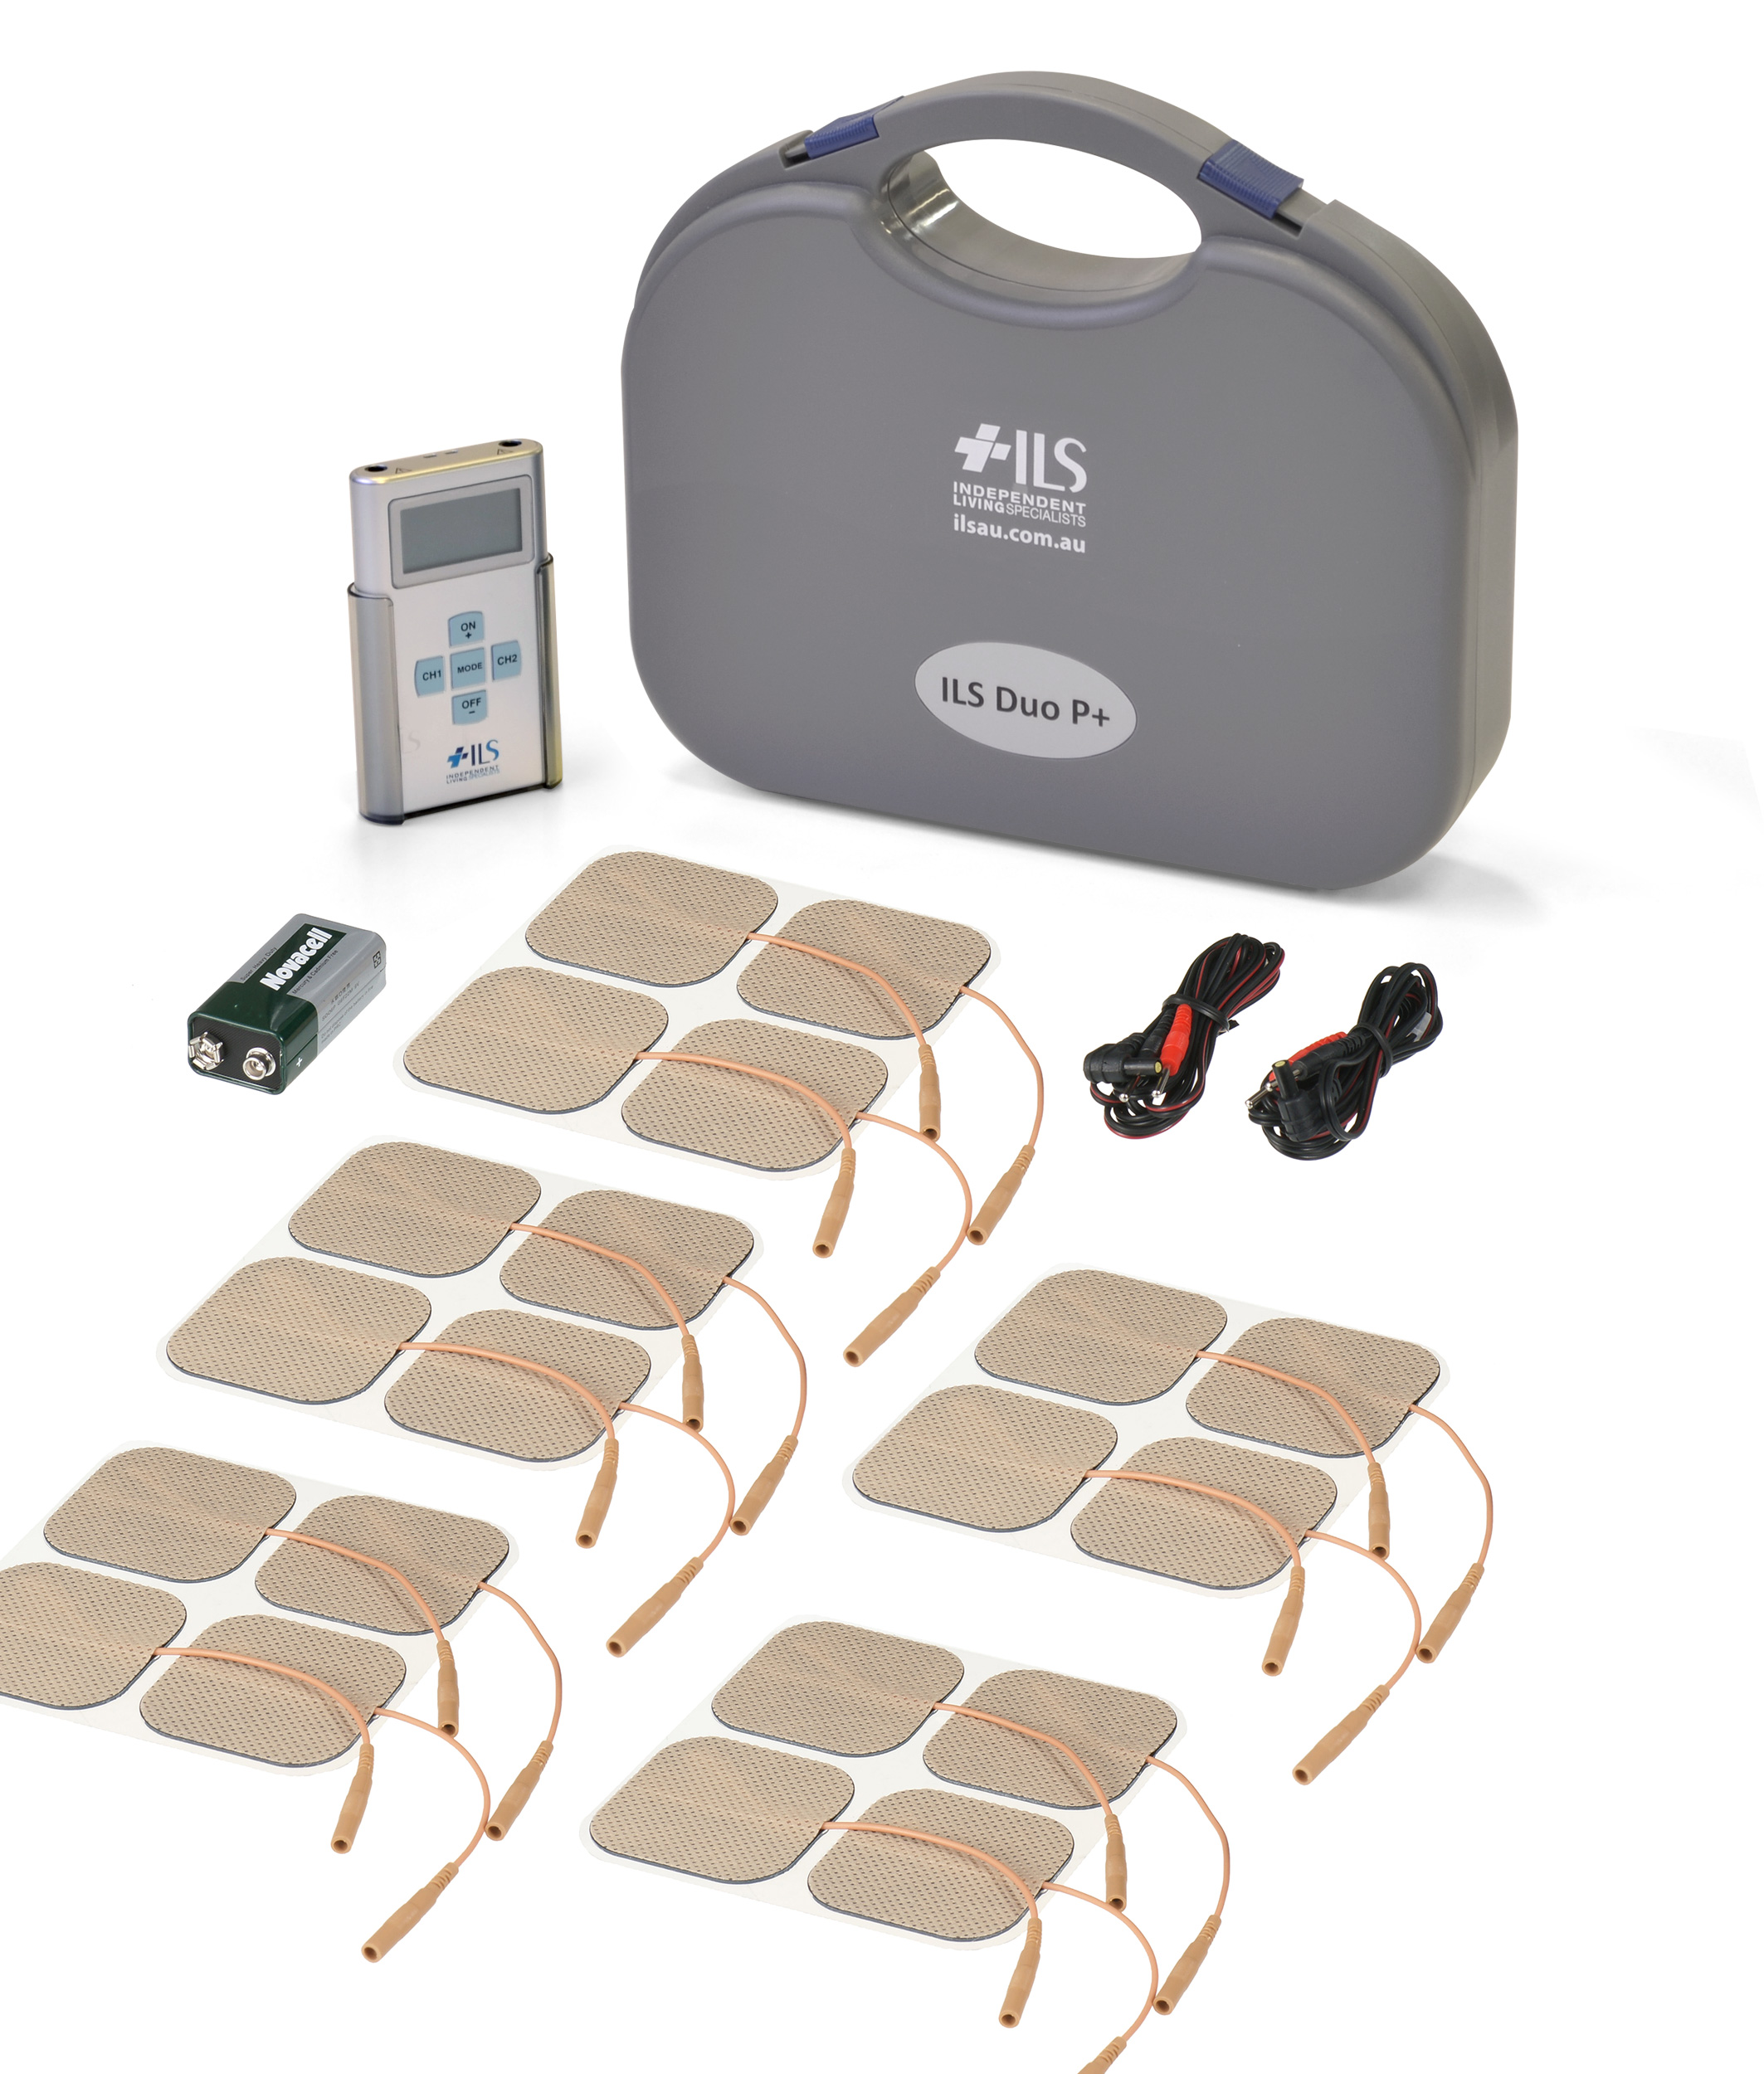 new pads for tens machine